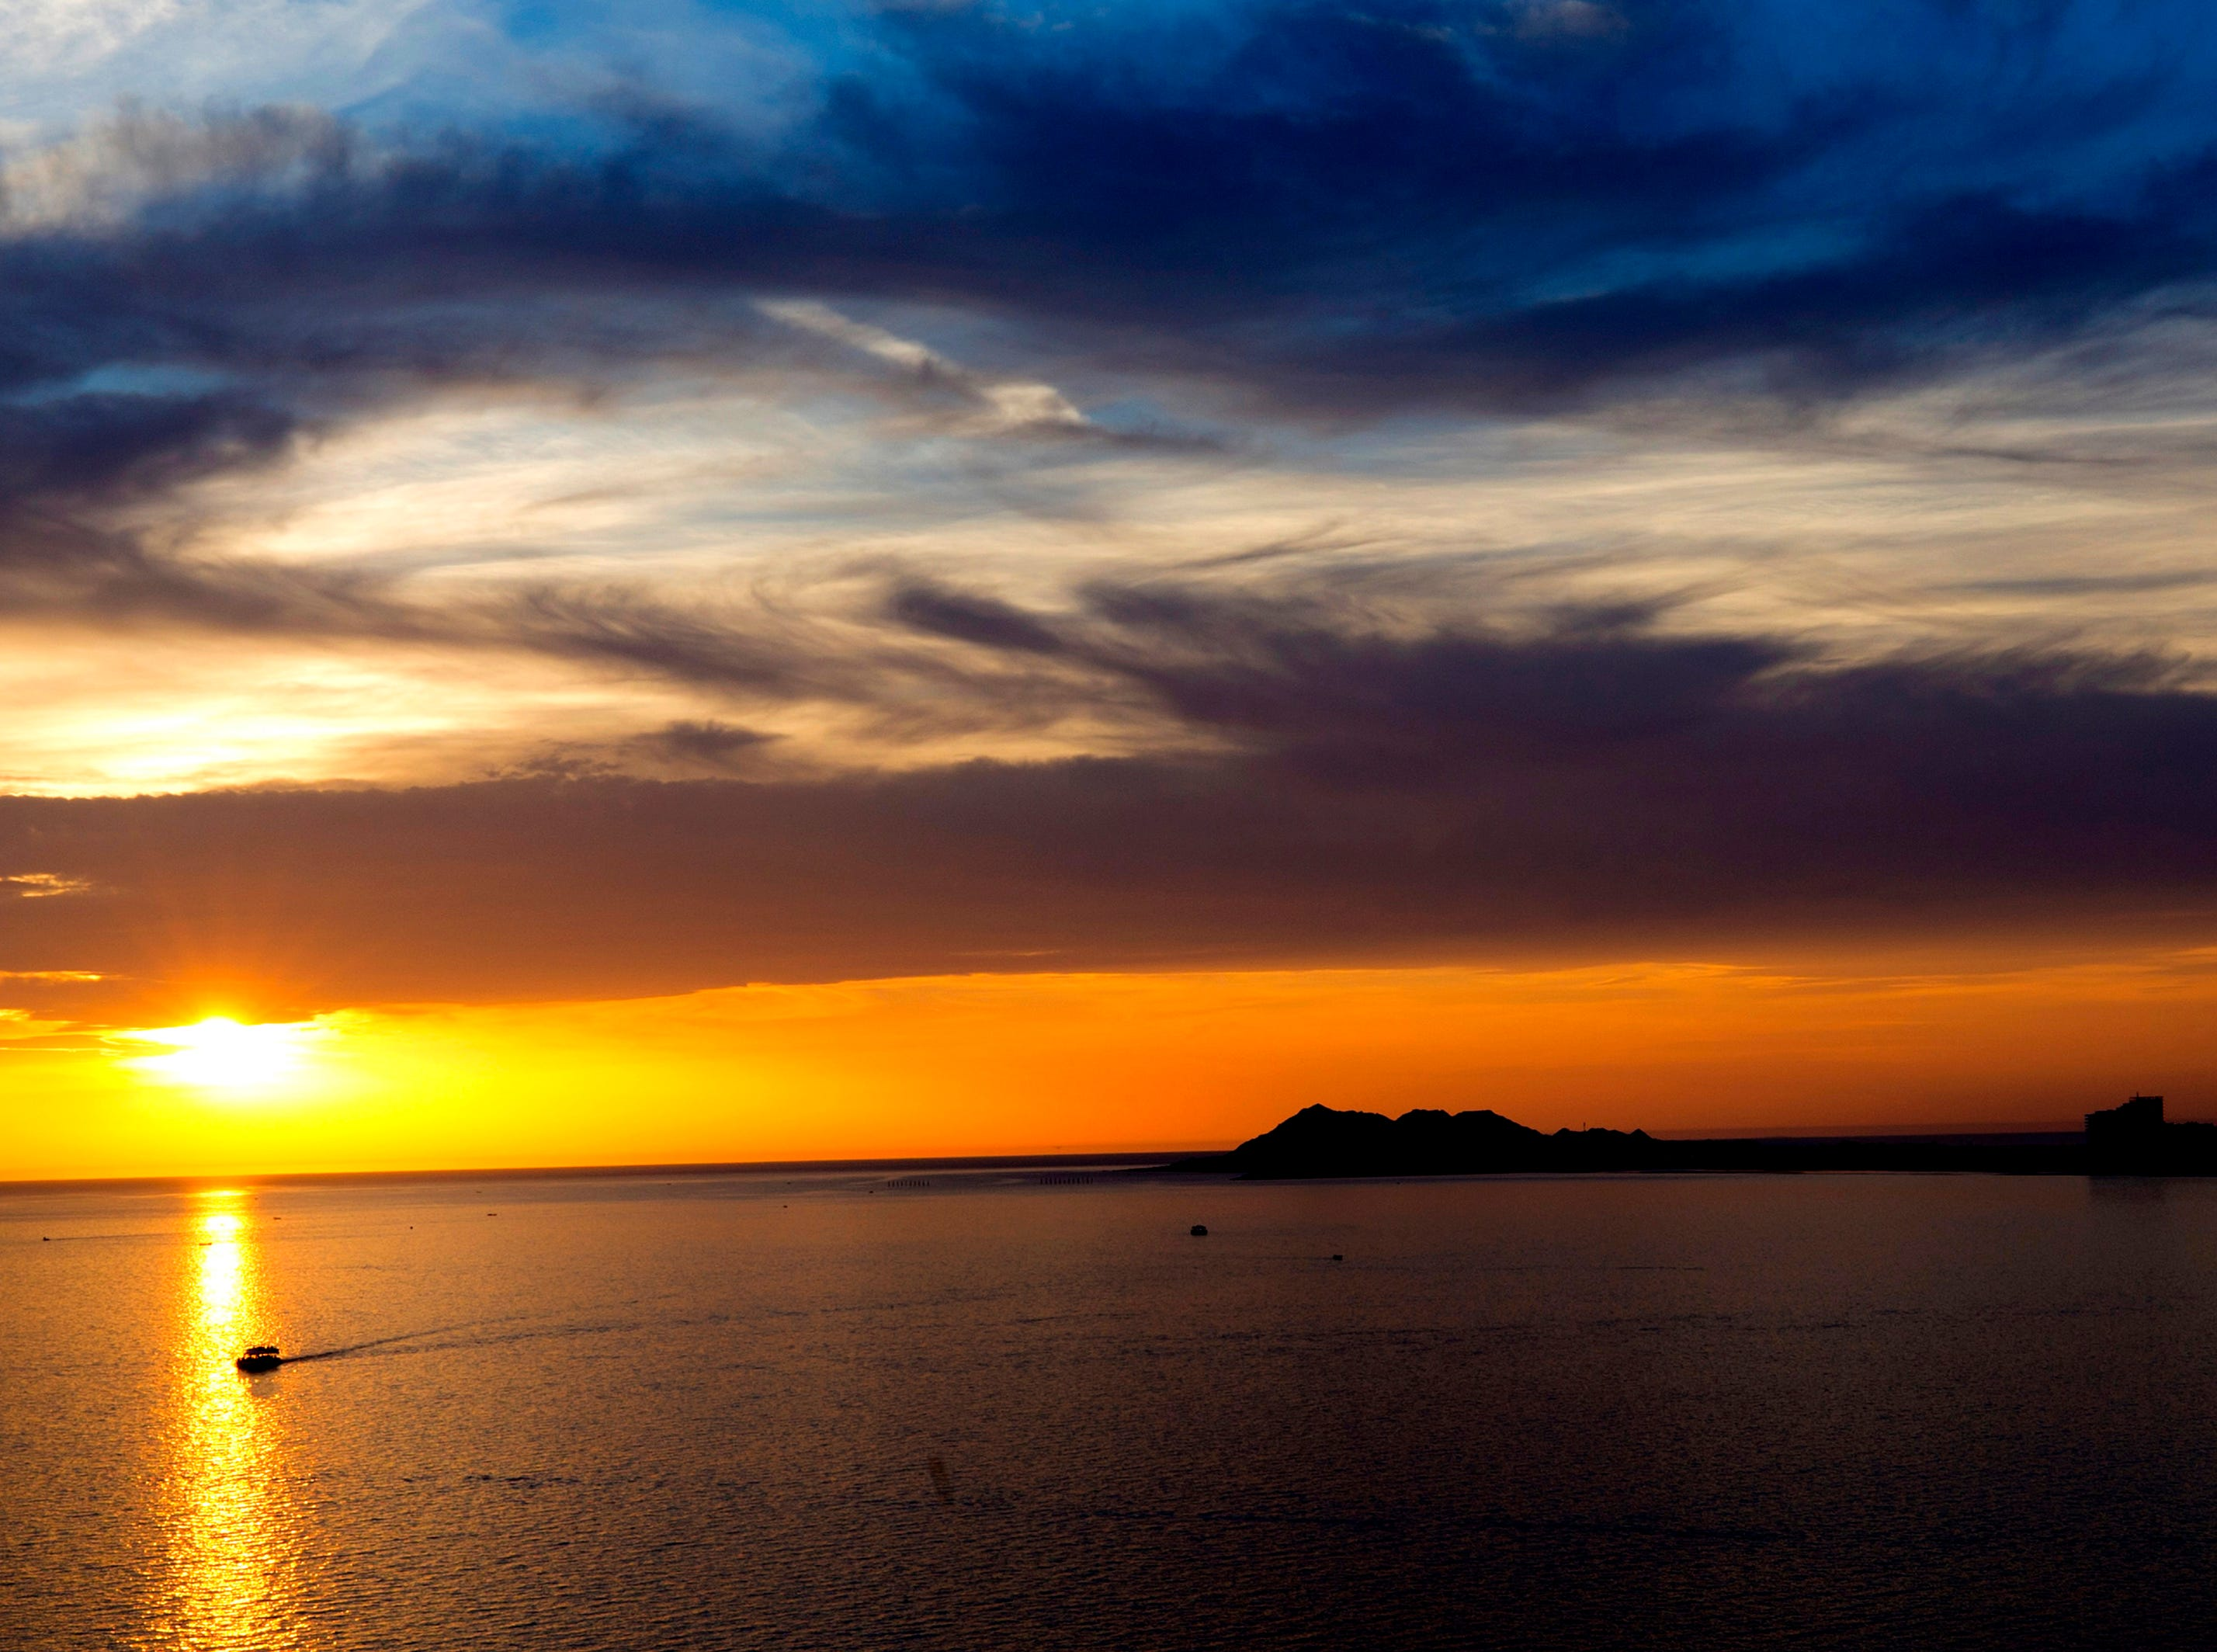 One of the best places to see a sunset over the Sea of Cortez is from La Casa del Capitan in Puerto Penasco, Mexico.